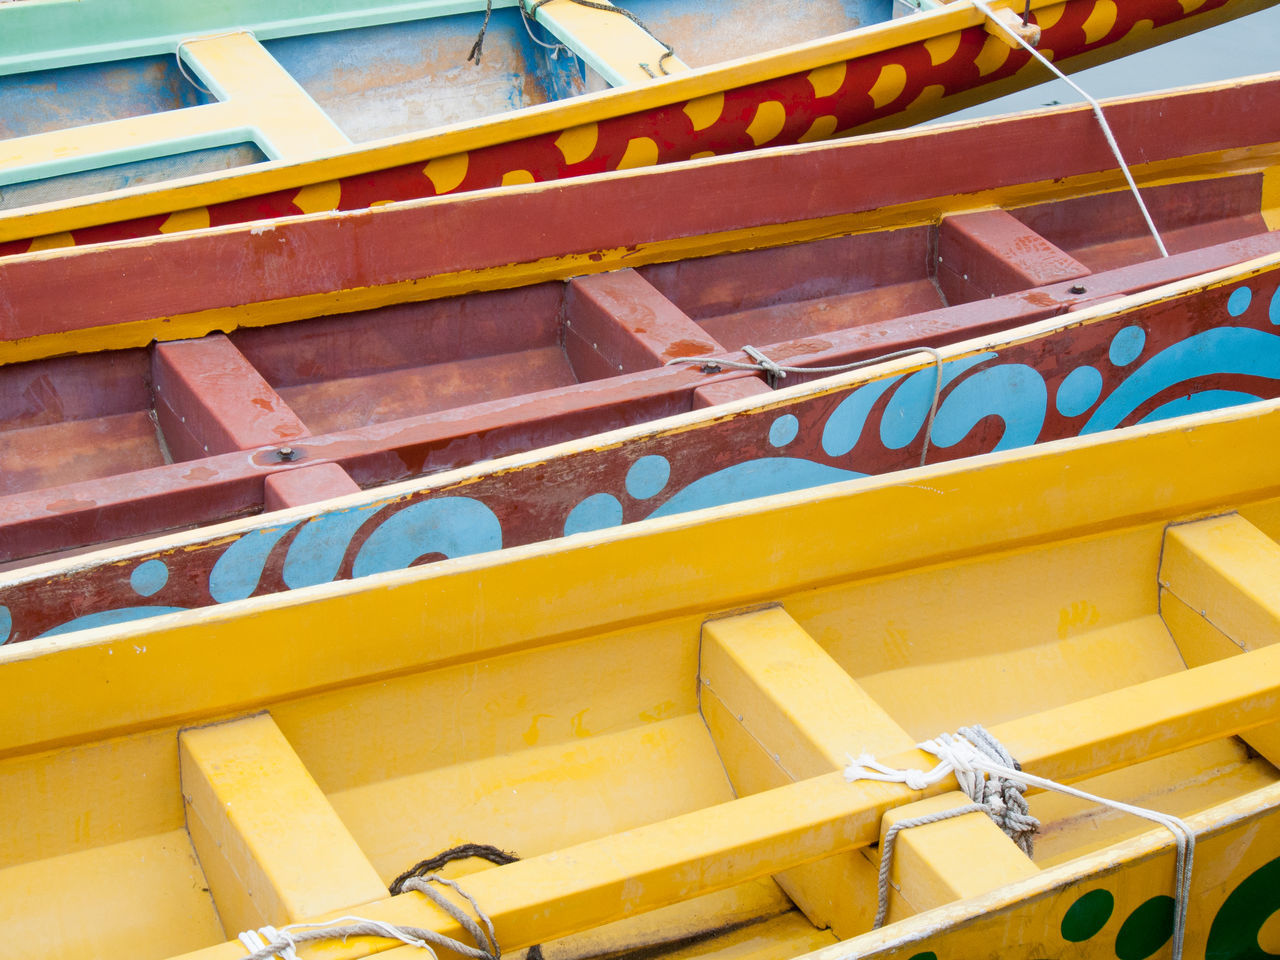 Part of wooden canoes Abstract Canoes Close-up Colourful Day Horizontal Kayak Looking Down No People Outdoors Part Of Wood Wooden Wooden Canoe Yellow